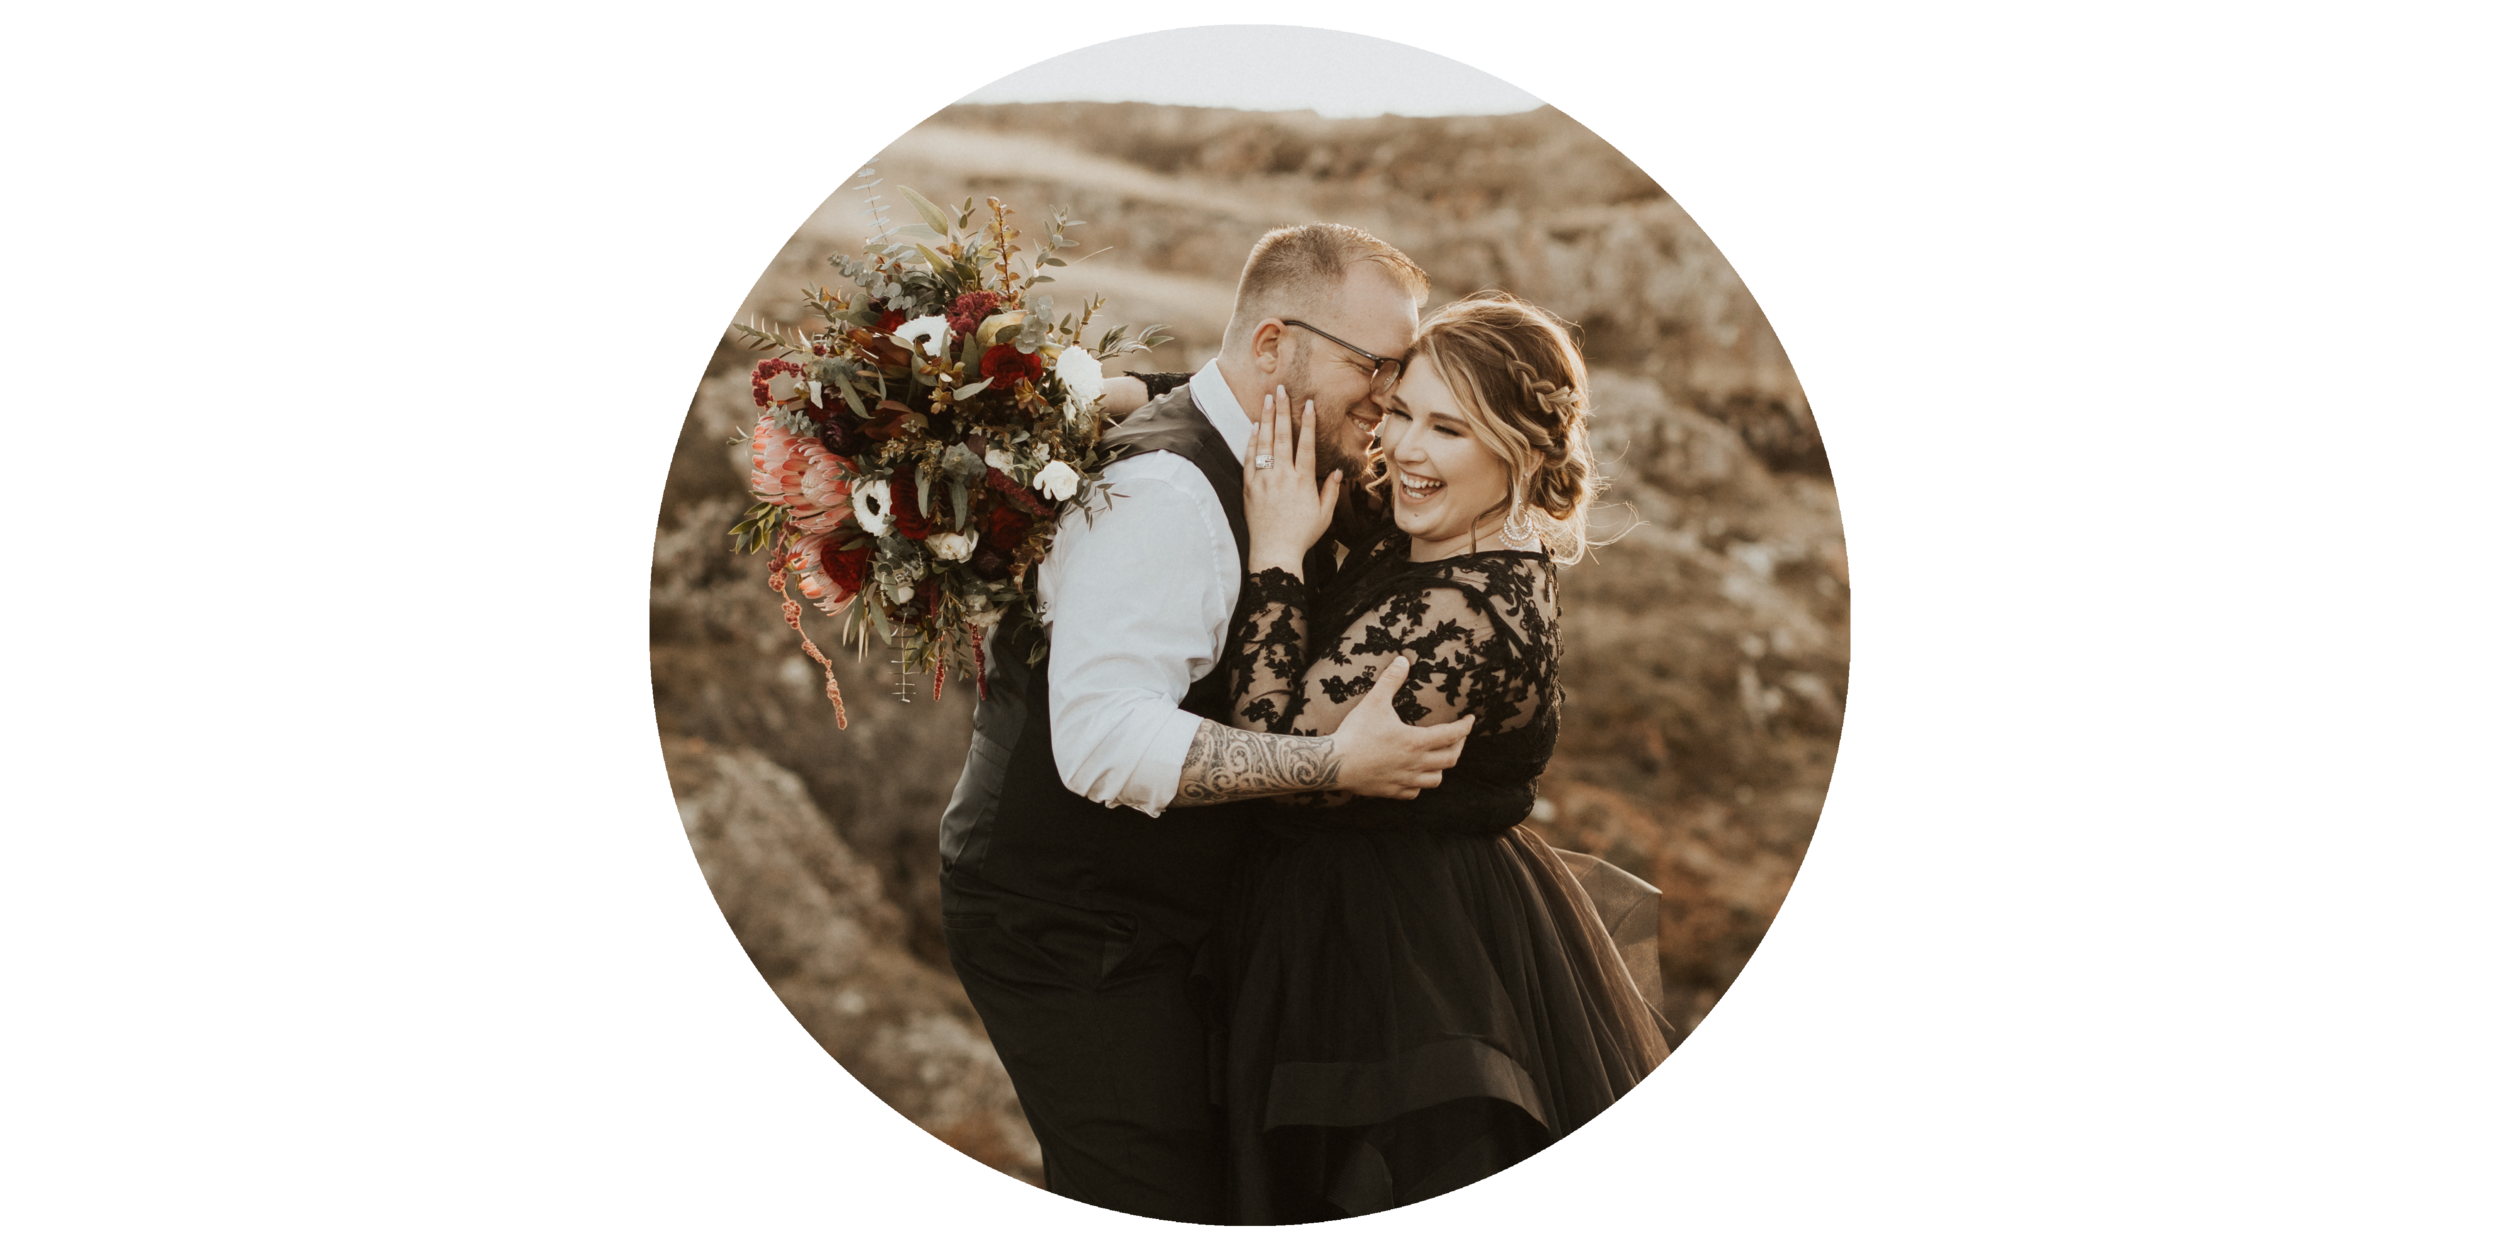 bride+groom_Briannarecordphotography-185 Round.png